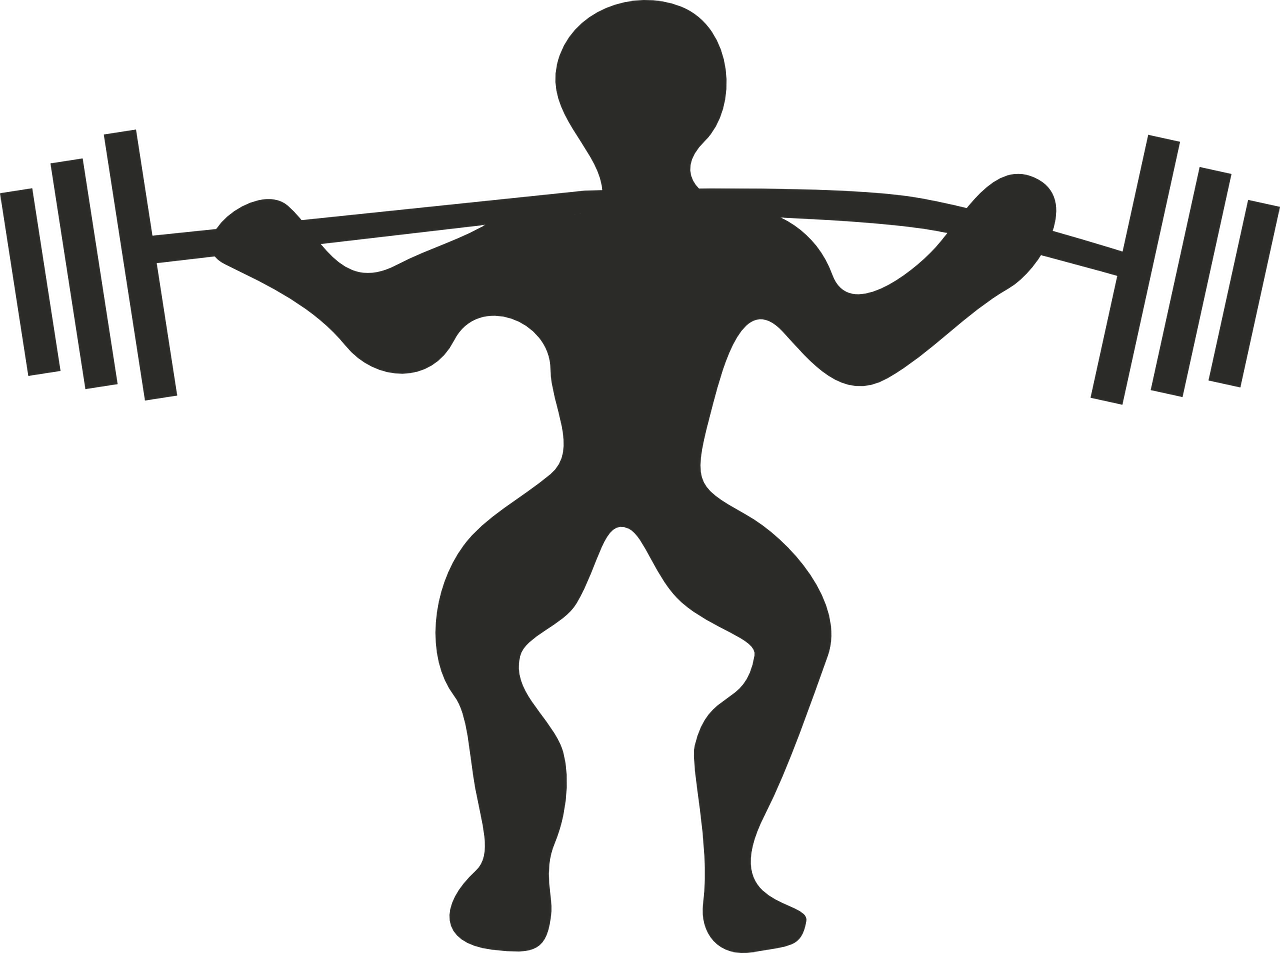 Weight lifting clipart no copyright jpg free library Family Banner - Weight Lifting , Transparent Cartoon - Jing.fm jpg free library